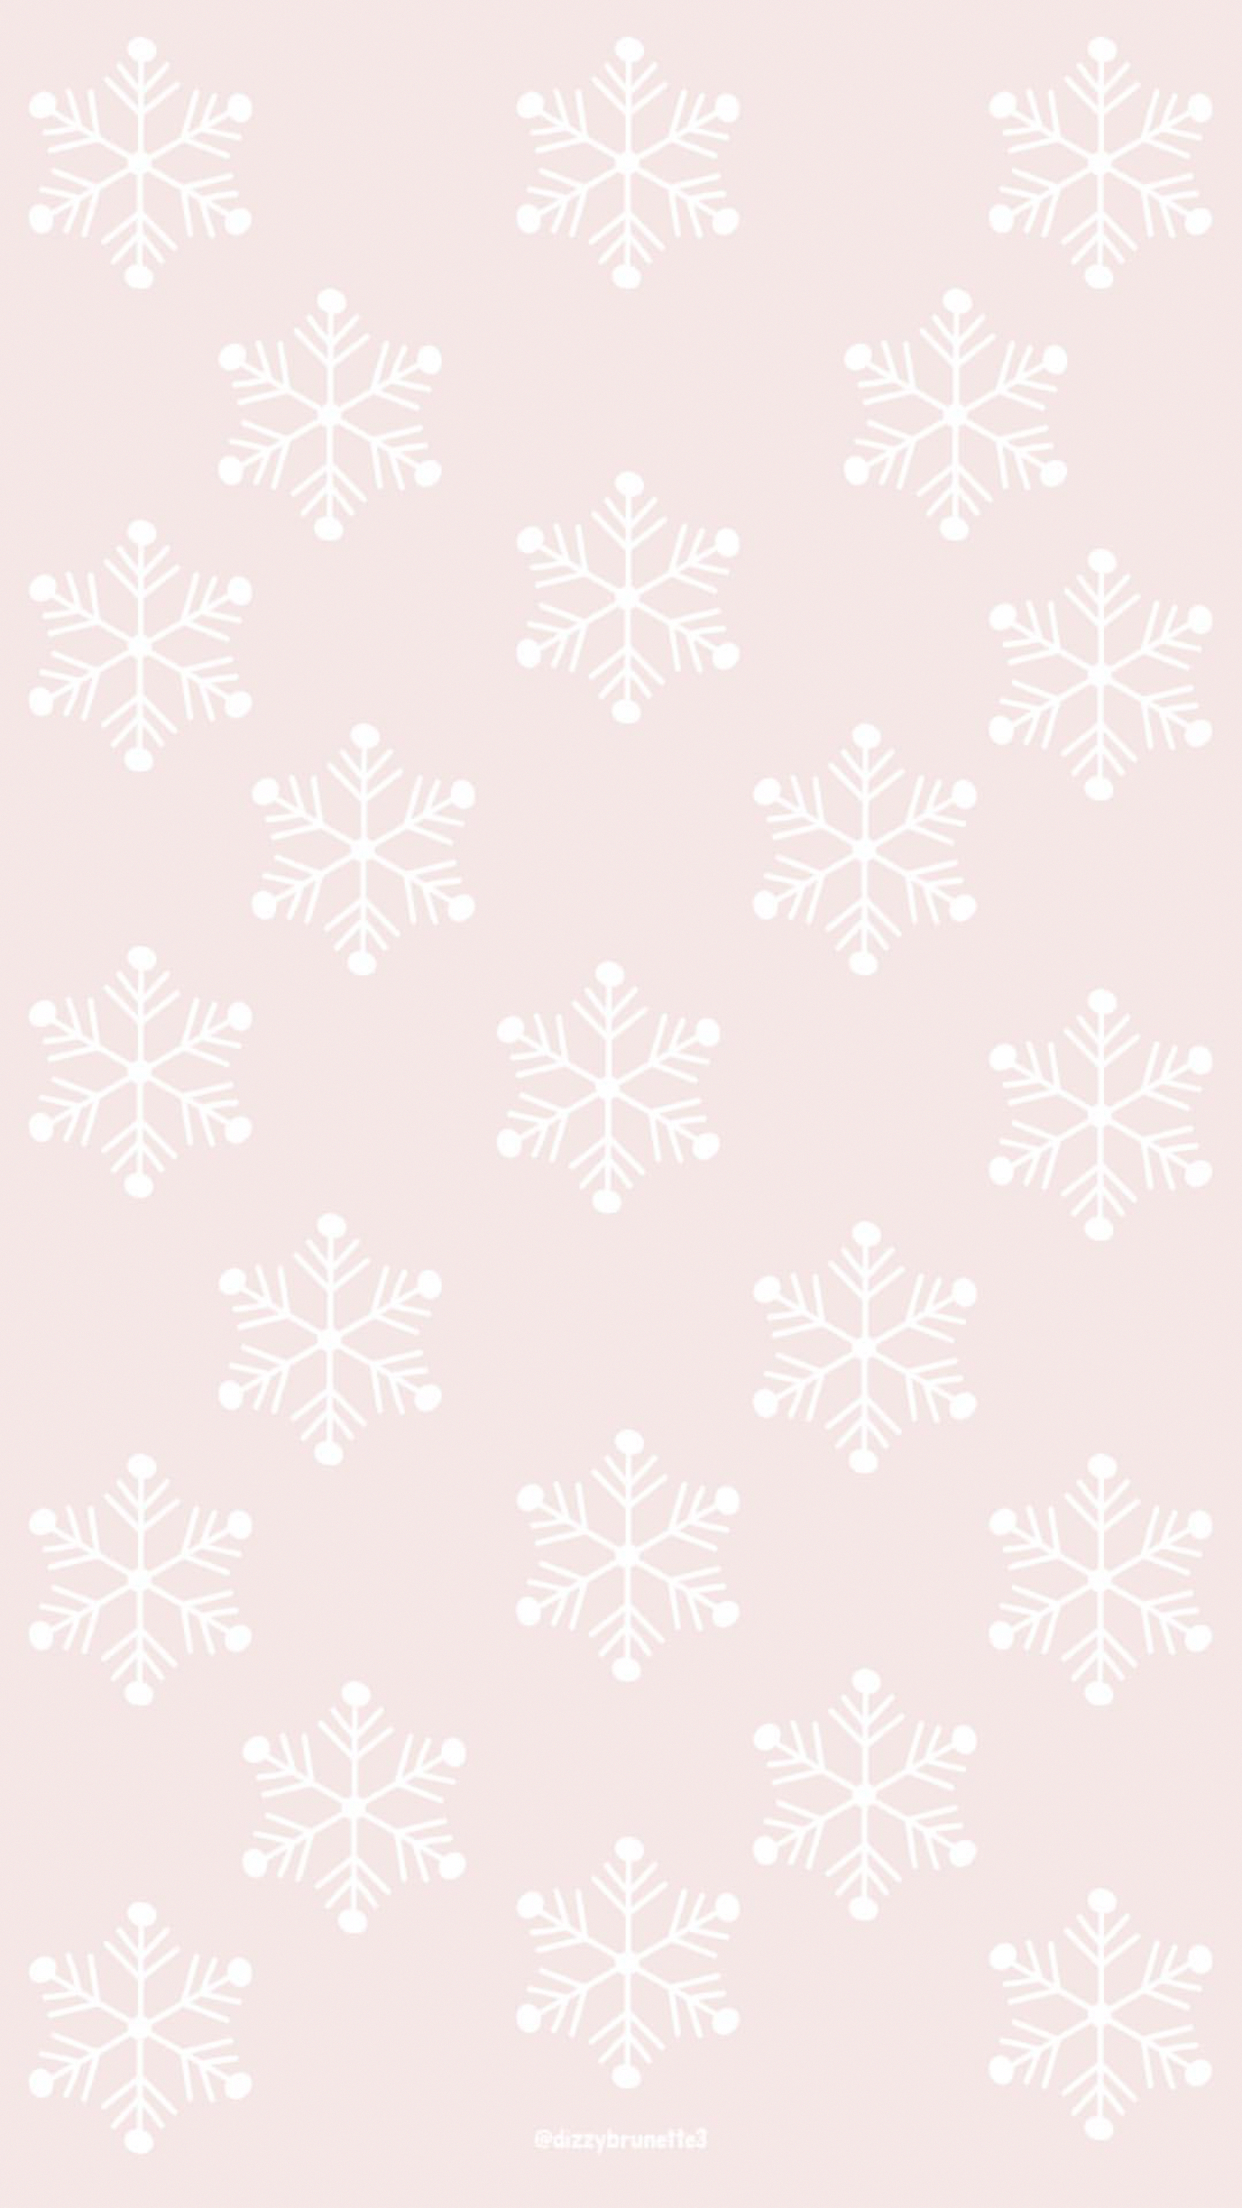 pattern snowflakes winter iphonewallpaper Wallpaper iphone 1242x2208